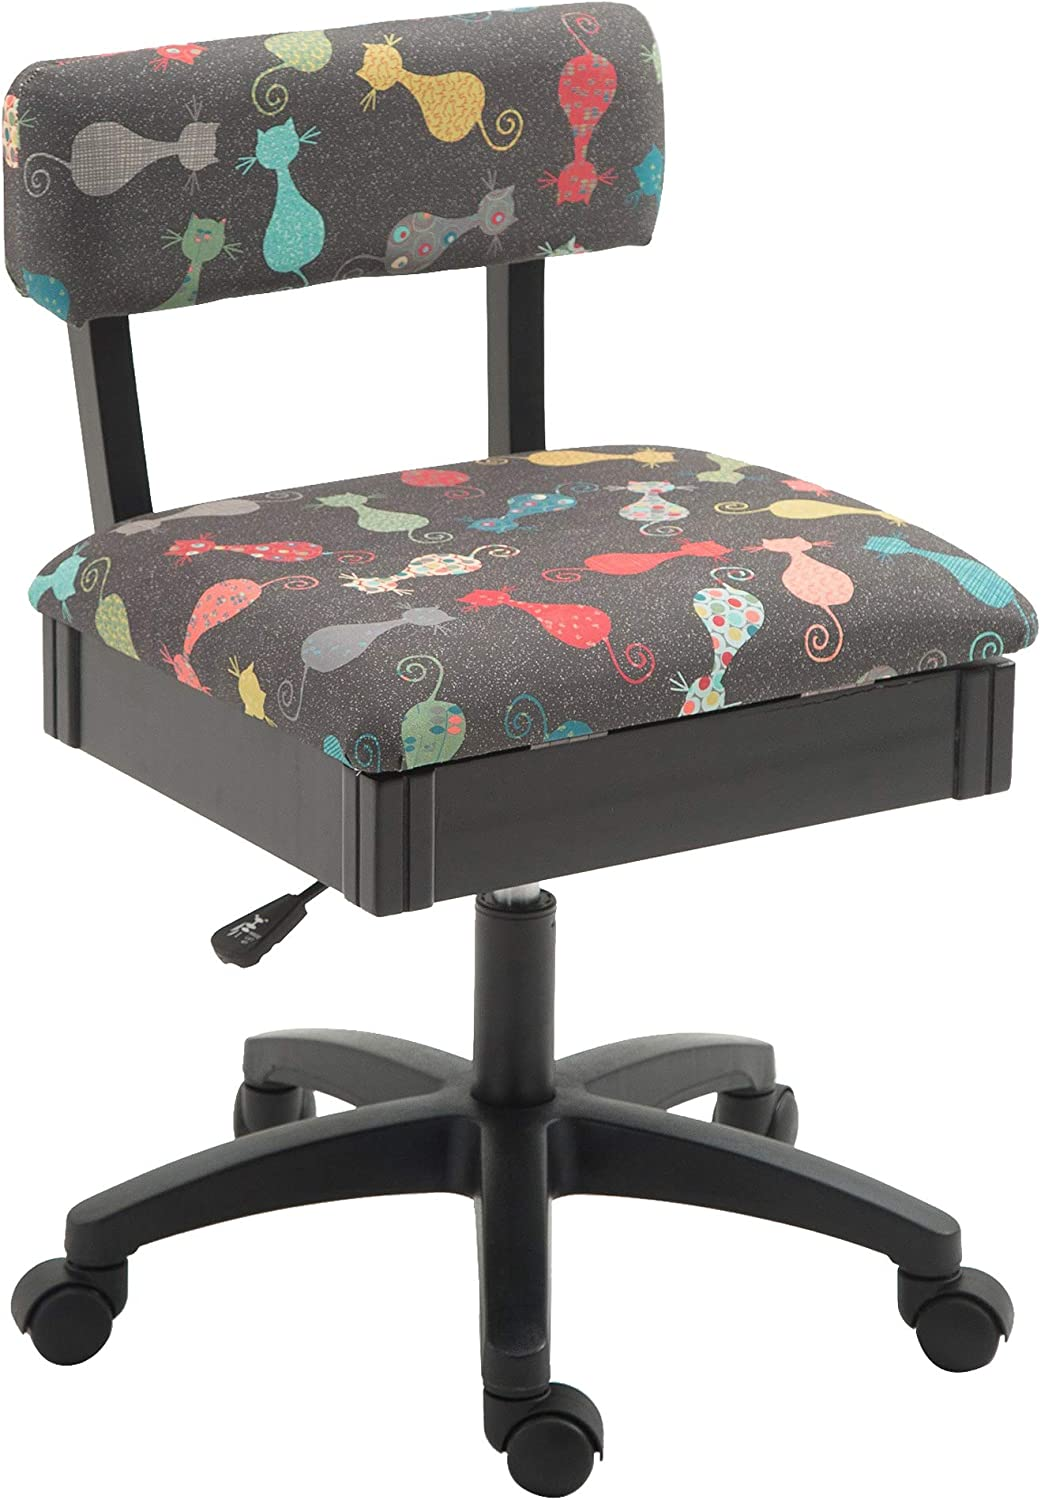 Arrow H6103 Adjustable Height Hydraulic Sewing and Craft Chair with Under Seat Storage and Printed Fabric, Gray Cat Fabric